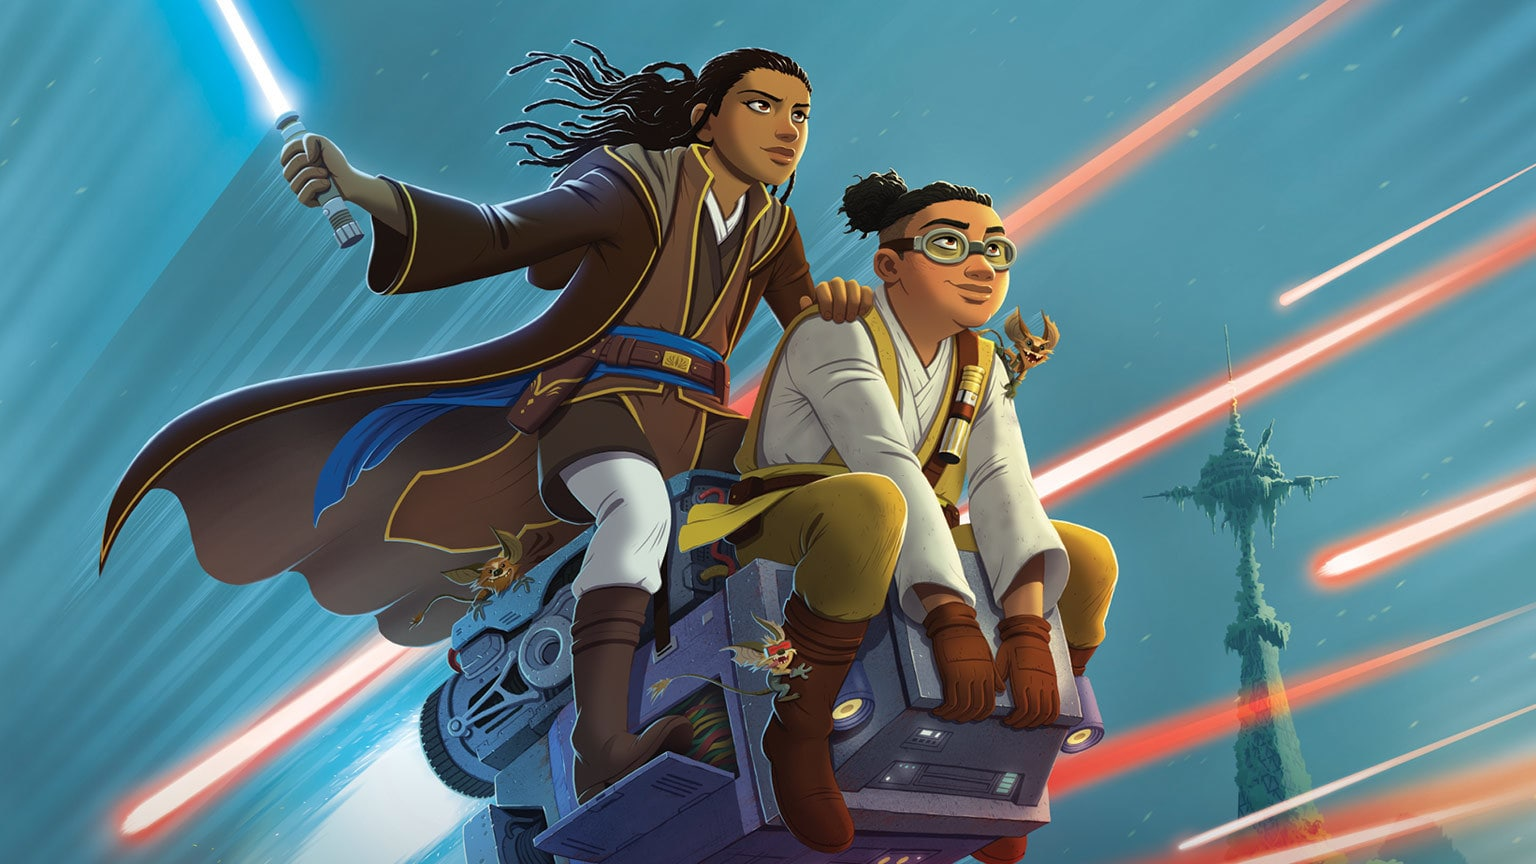 Jedi Vernestra Rwoh Calls for Help in Star Wars: The High Republic: The Race to Crashpoint Tower – Exclusive Excerpt